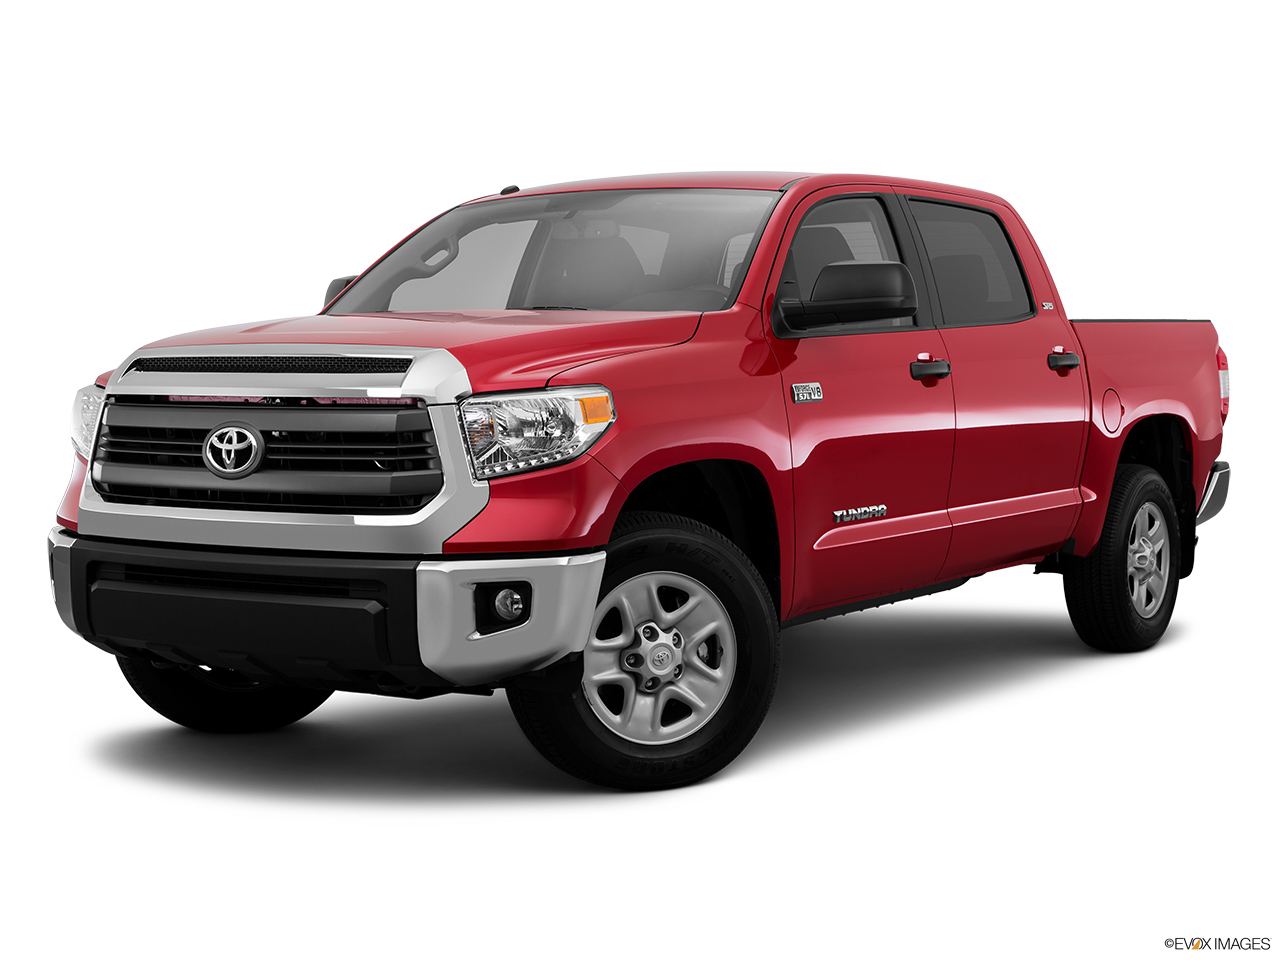 2015 toyota tundra 4wd truck crewmax 4 6l v8 6 spd at sr5. Black Bedroom Furniture Sets. Home Design Ideas